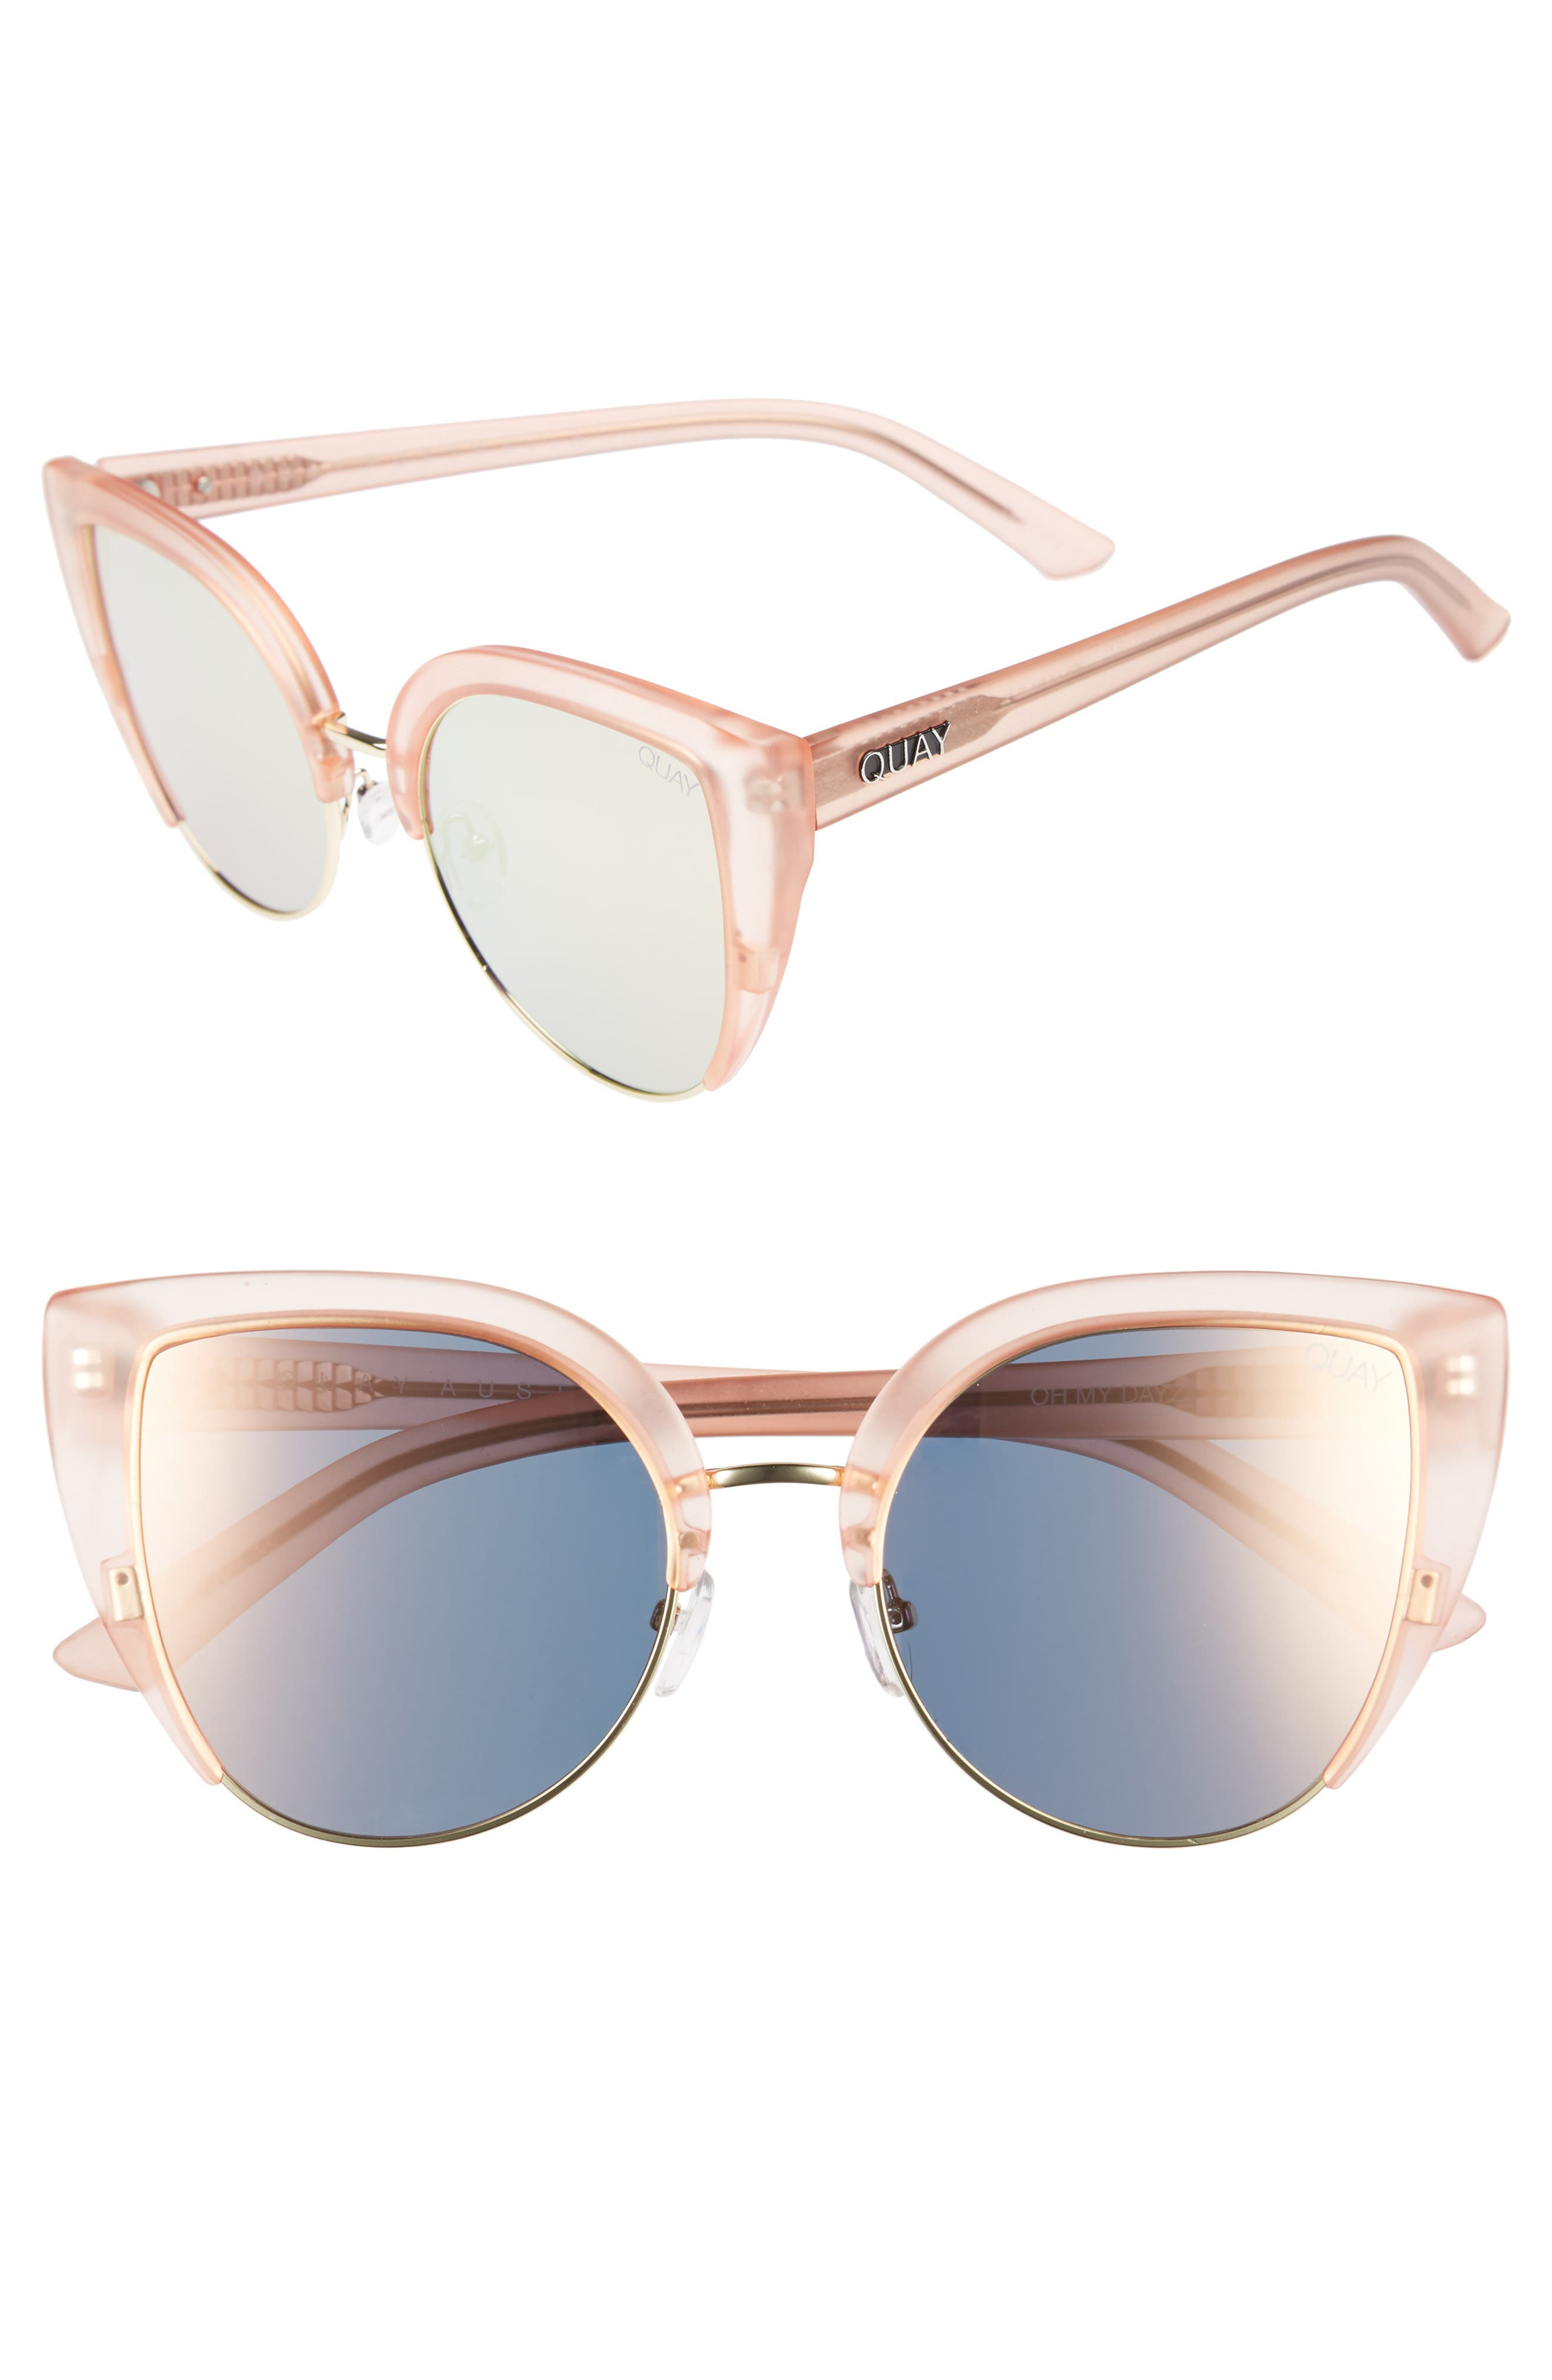 x Missguided Oh My Dayz 53mm Sunglasses,                             Main thumbnail 1, color,                             Pink/ Gold